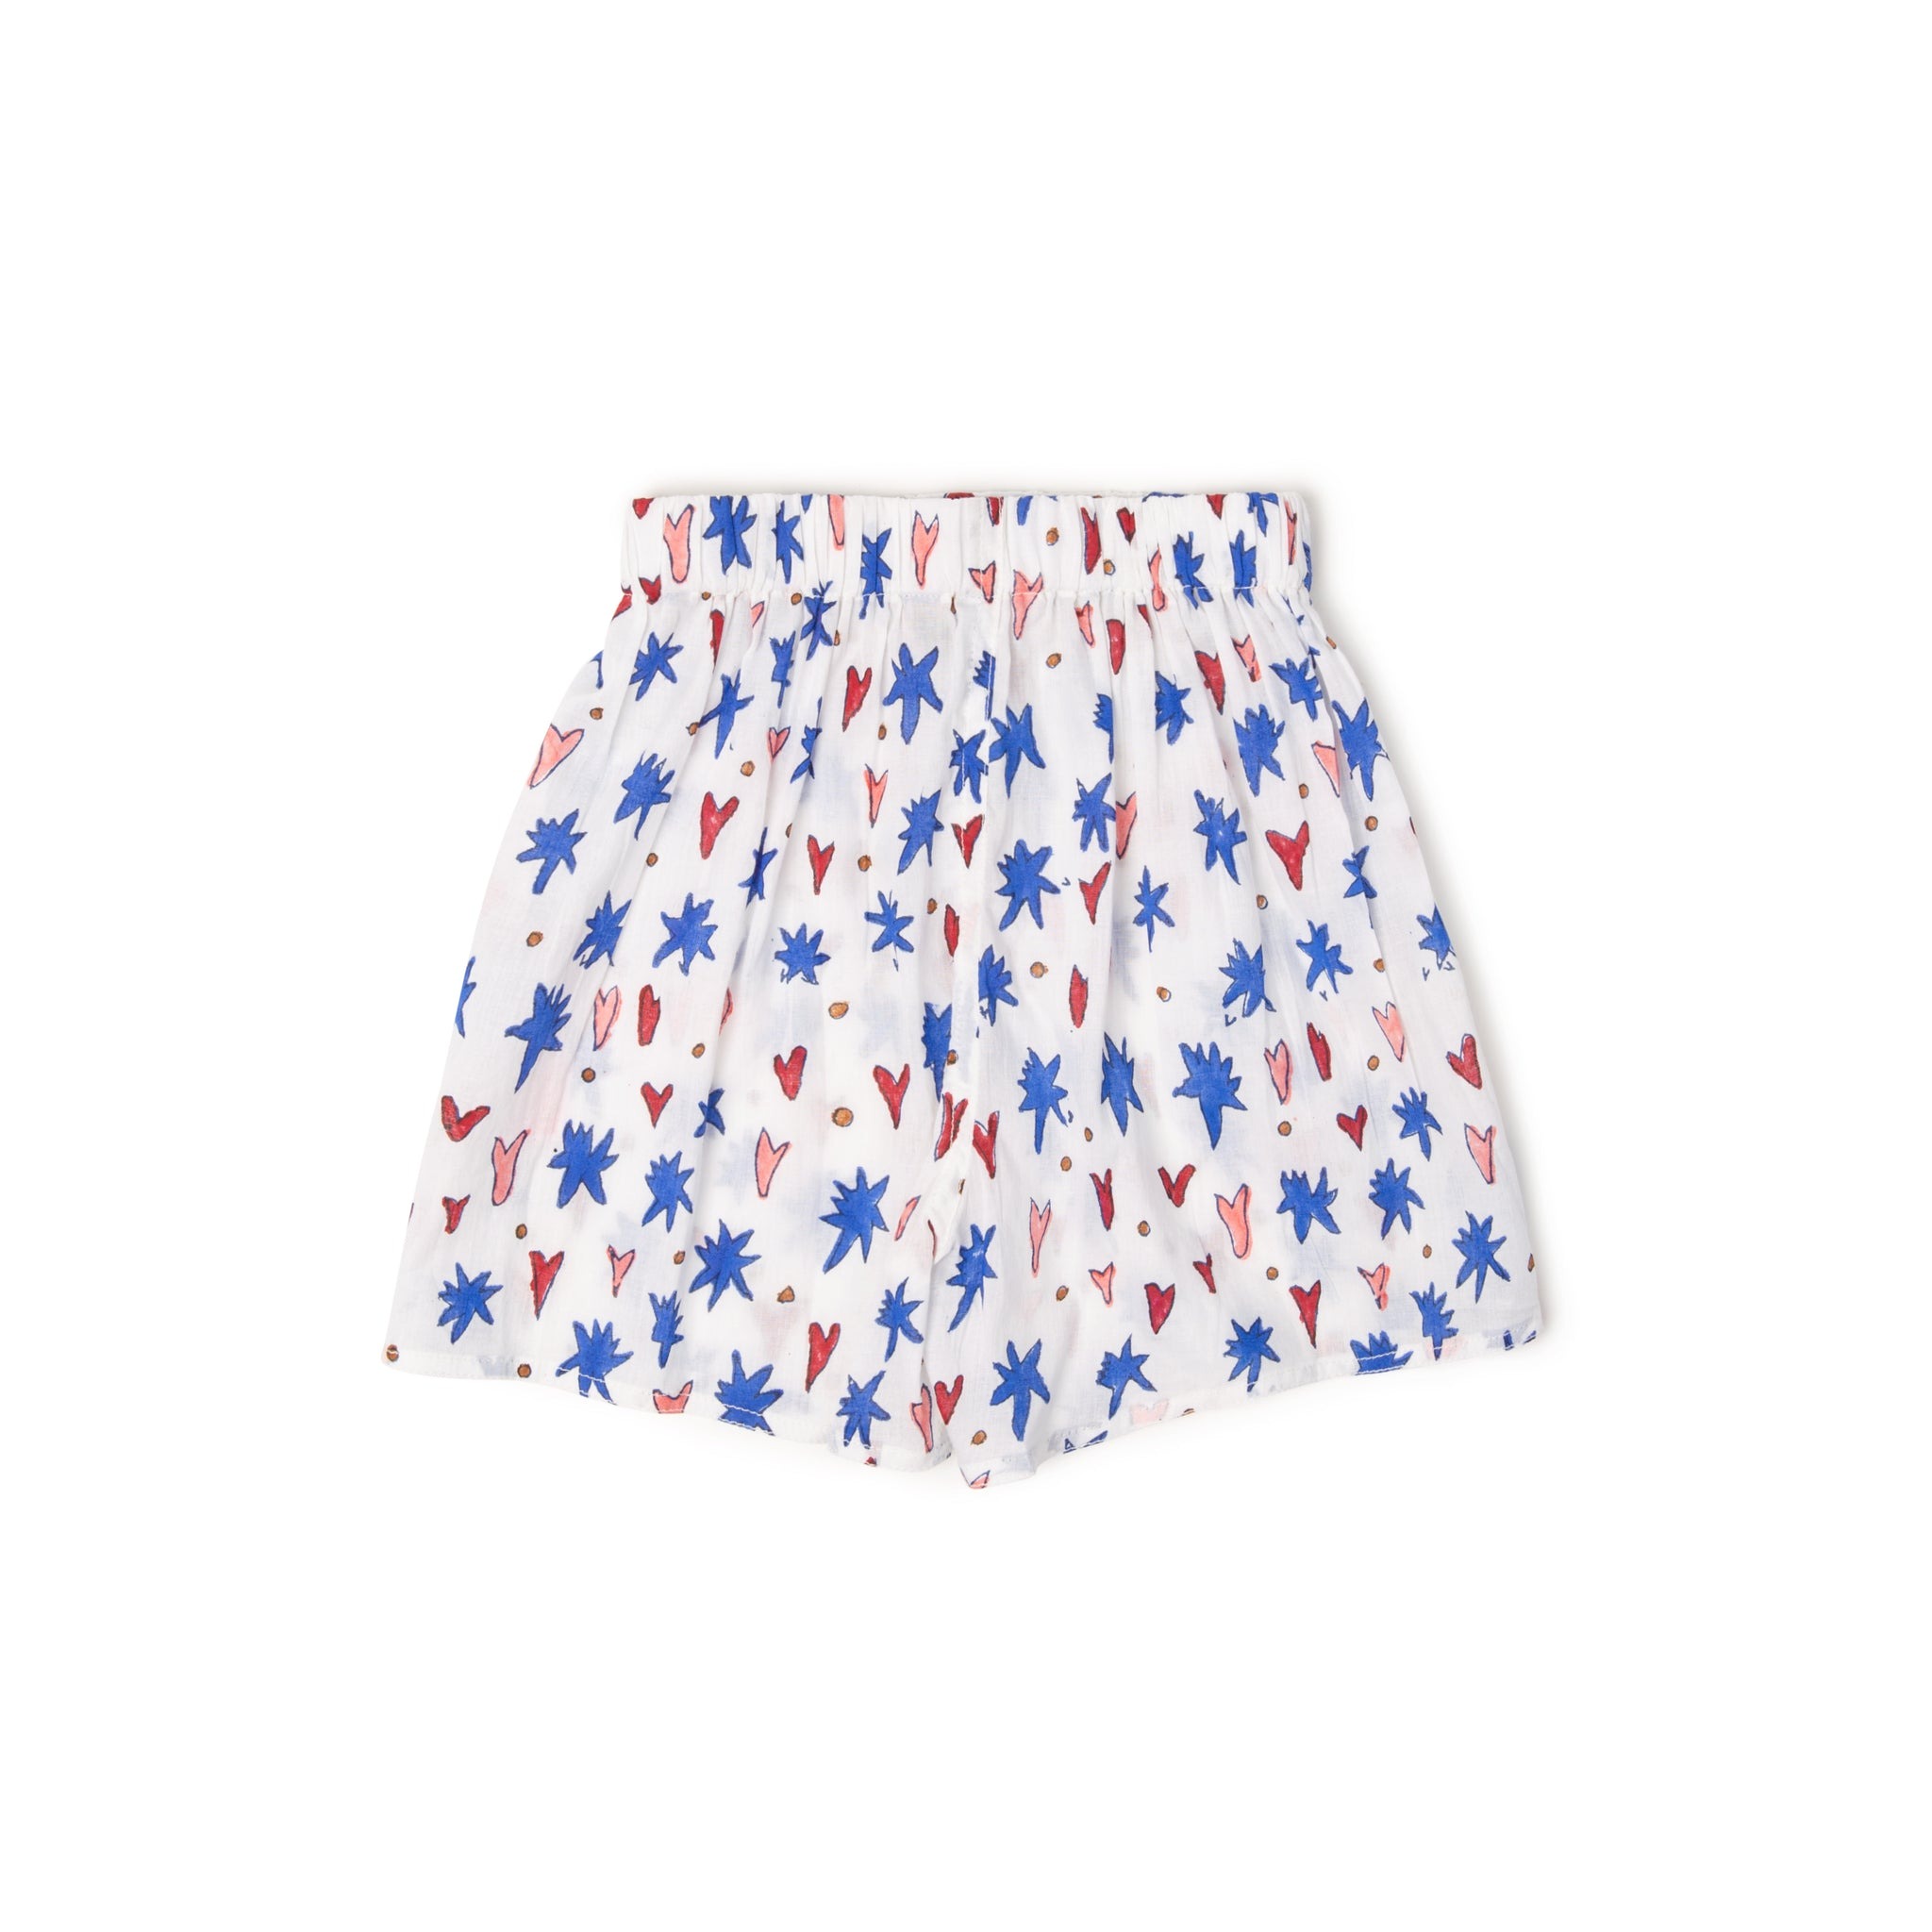 BOXERS MEN feat Tatiana Alida - Starry royal blue - Thelmaandleah